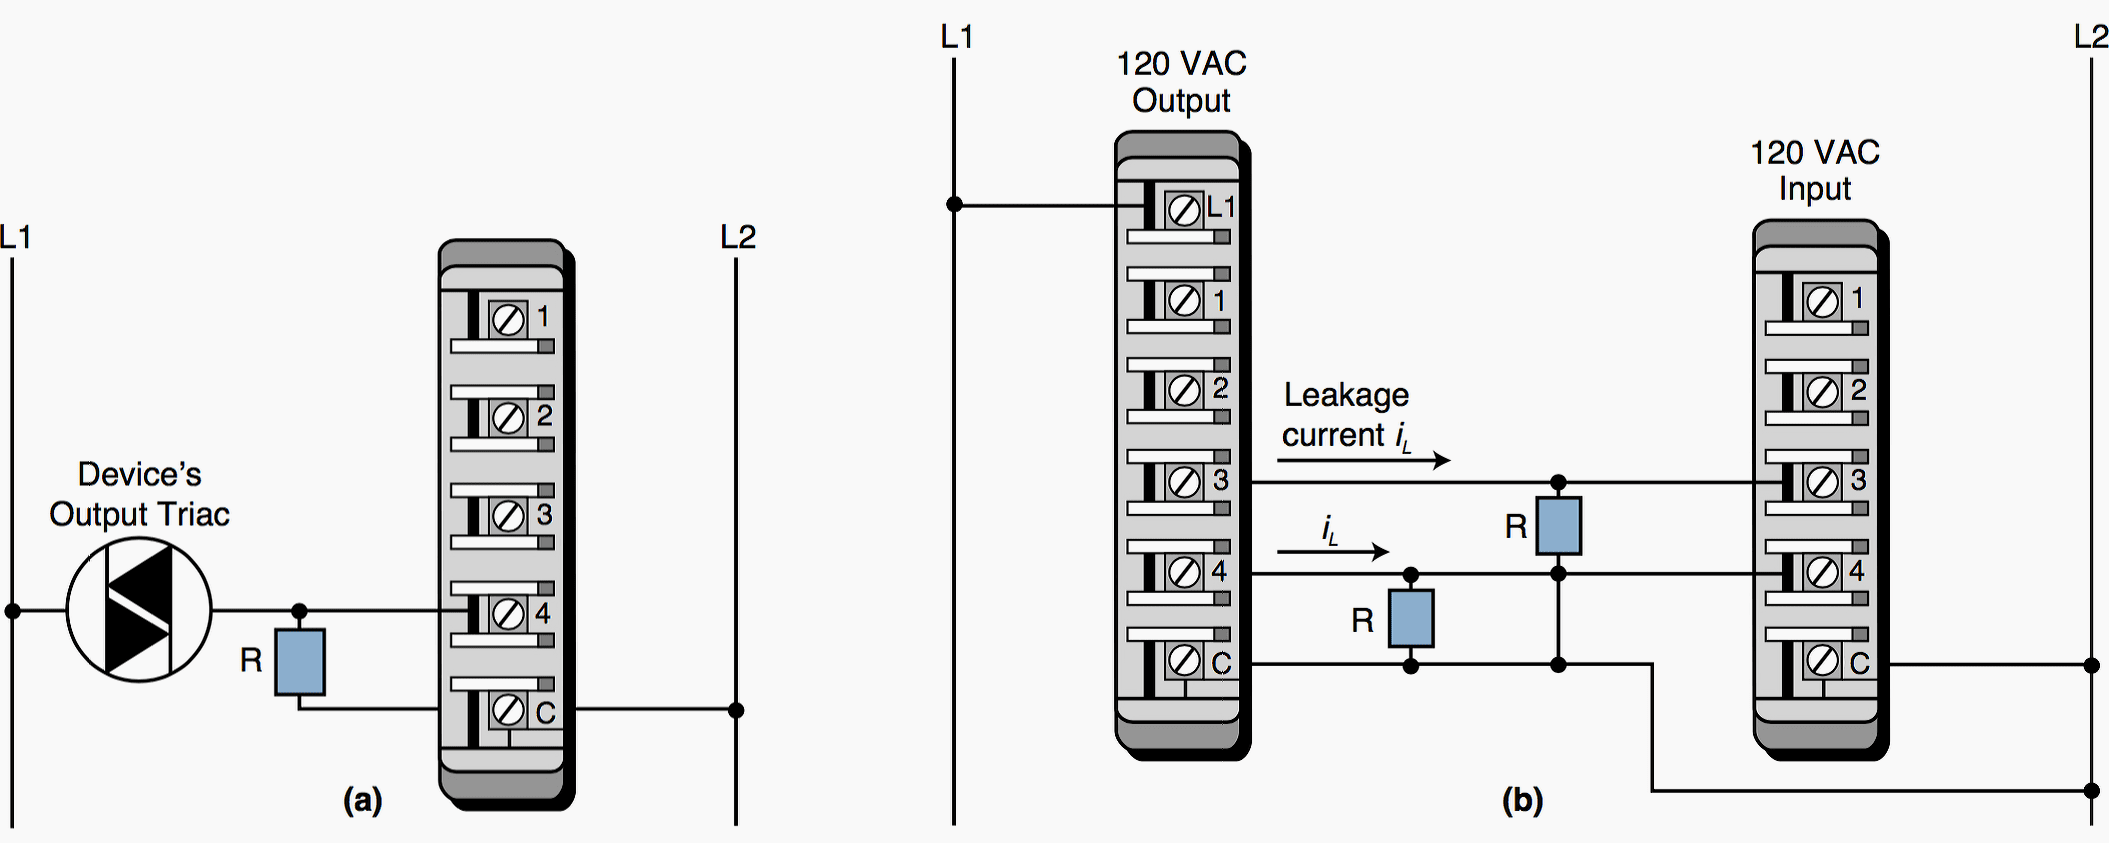 Machine Plc Wiring Diagram